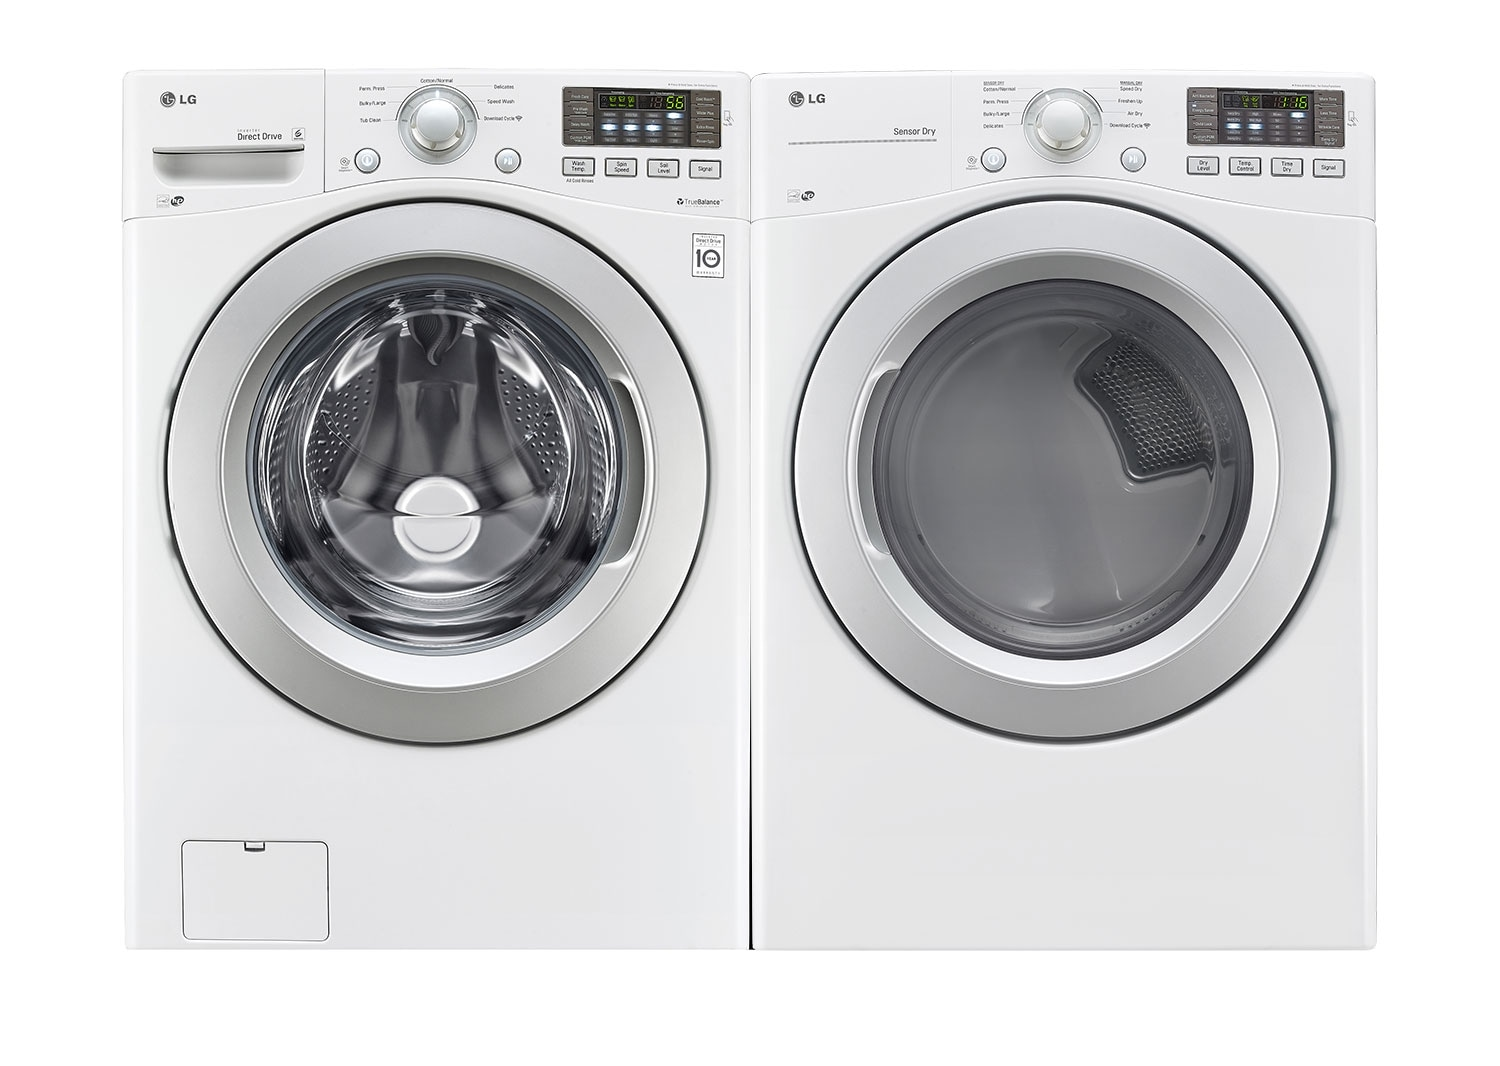 Washers and Dryers - LG 5.0 Cu. Ft. Front-Load Washer and 7.4 Cu. Ft. Gas Dryer